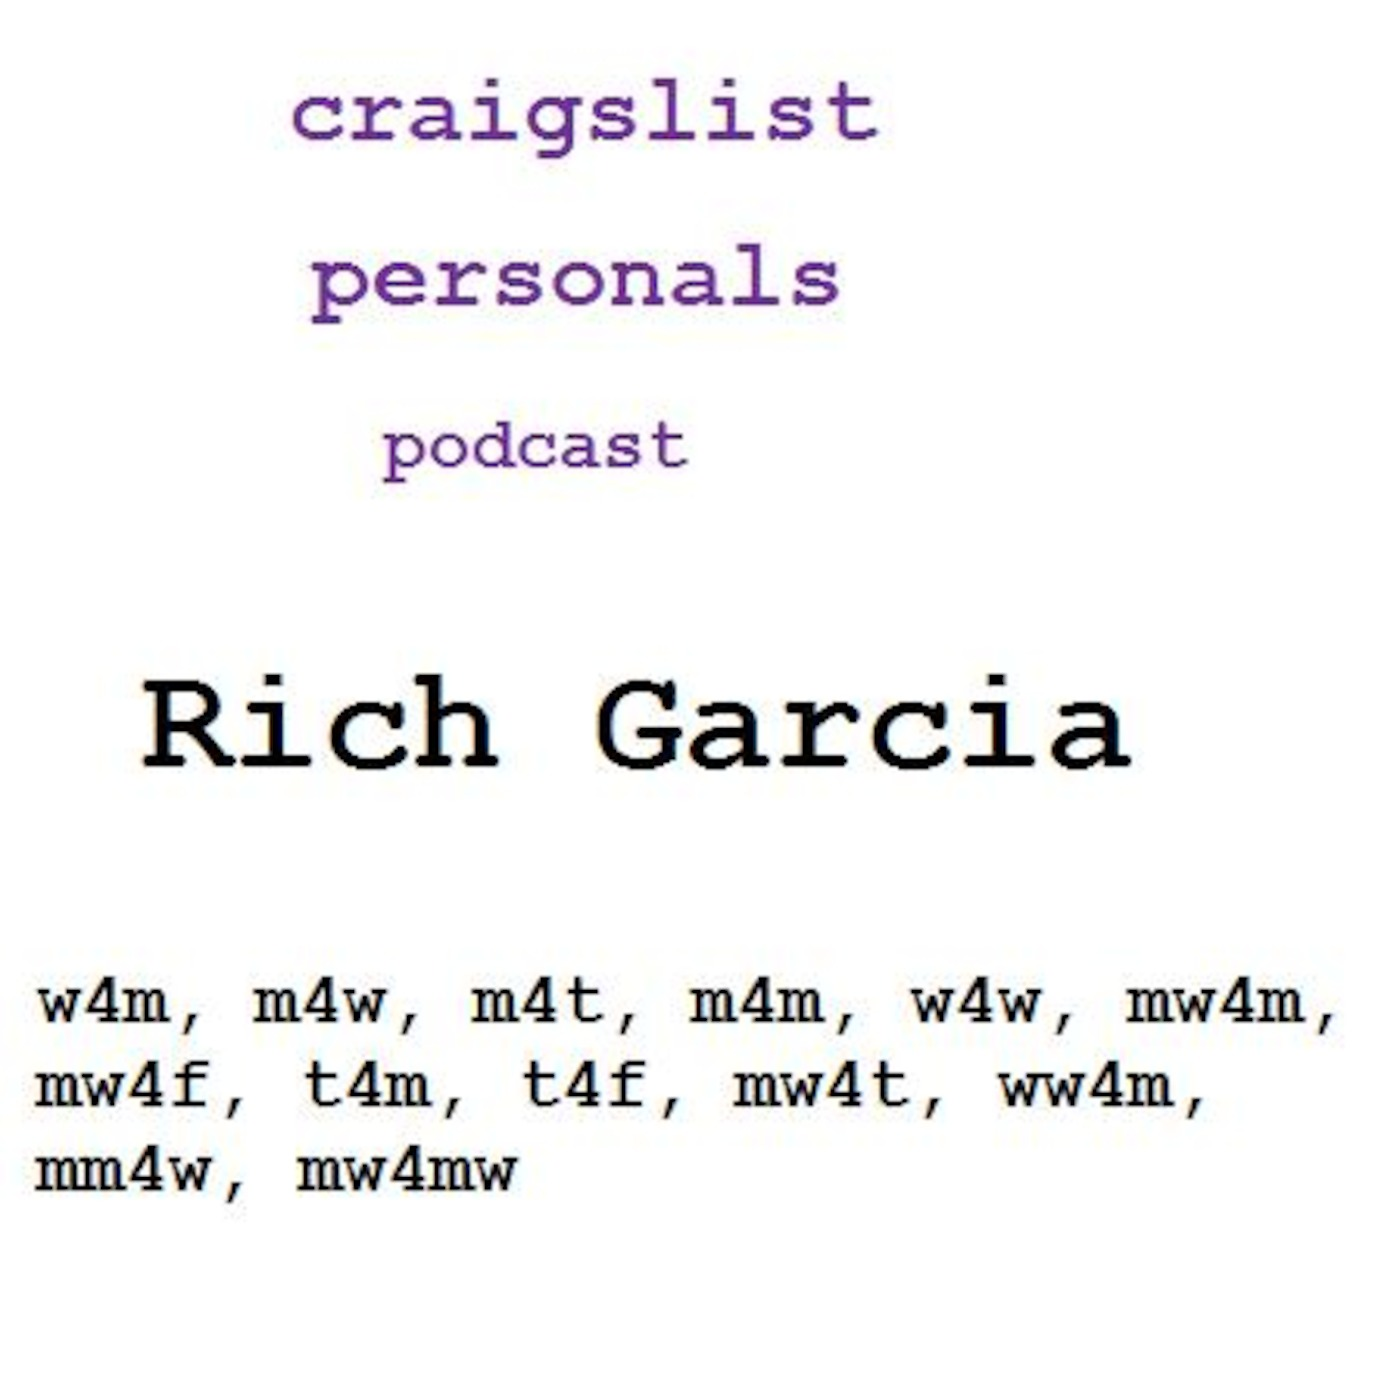 Rich Garcia's Podcast